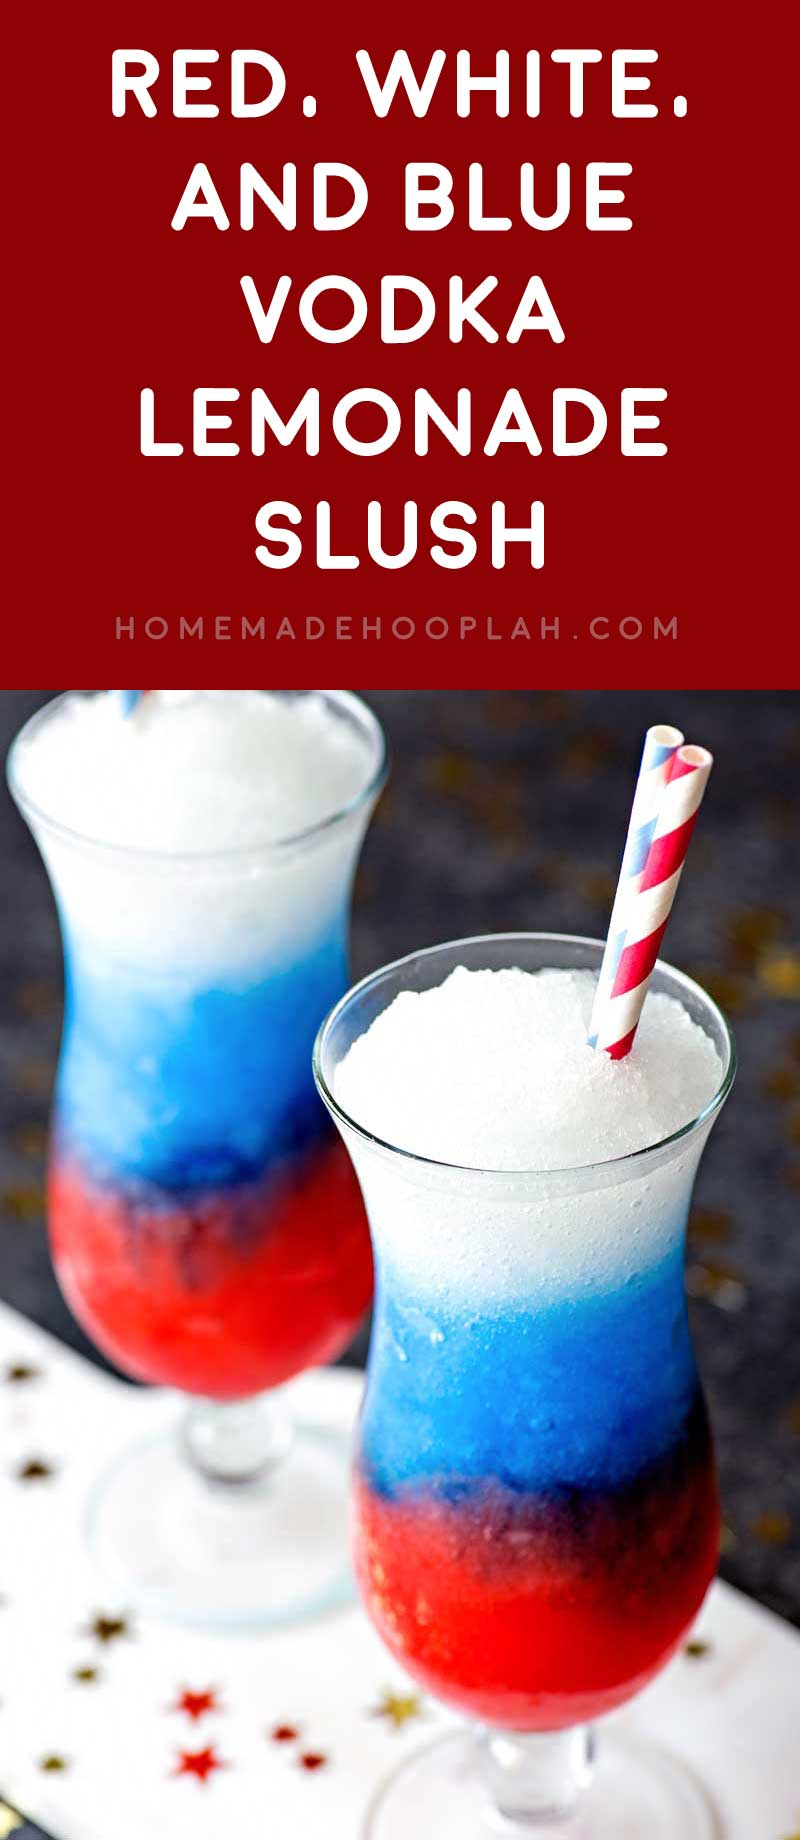 Red, White, and Blue Vodka Lemonade Slush! Celebrate your patriotism with a refreshing (and colorful!) slush made with grenadine, blue curacao, and spiked lemonade. | HomemadeHooplah.com